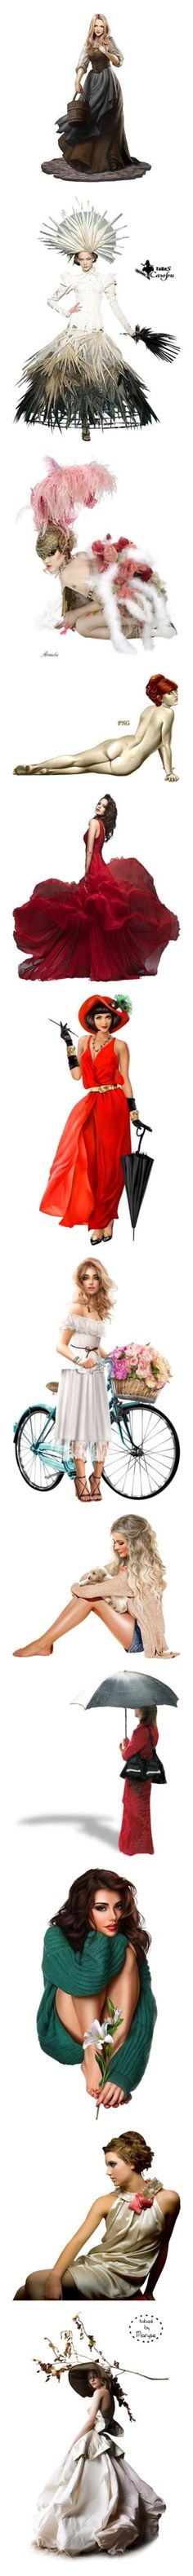 """Women"" by nerd-muffin ❤ liked on Polyvore featuring dolls, fantasy tube, girls, surreal, surrealism girl, red, dresses, women, models and people"